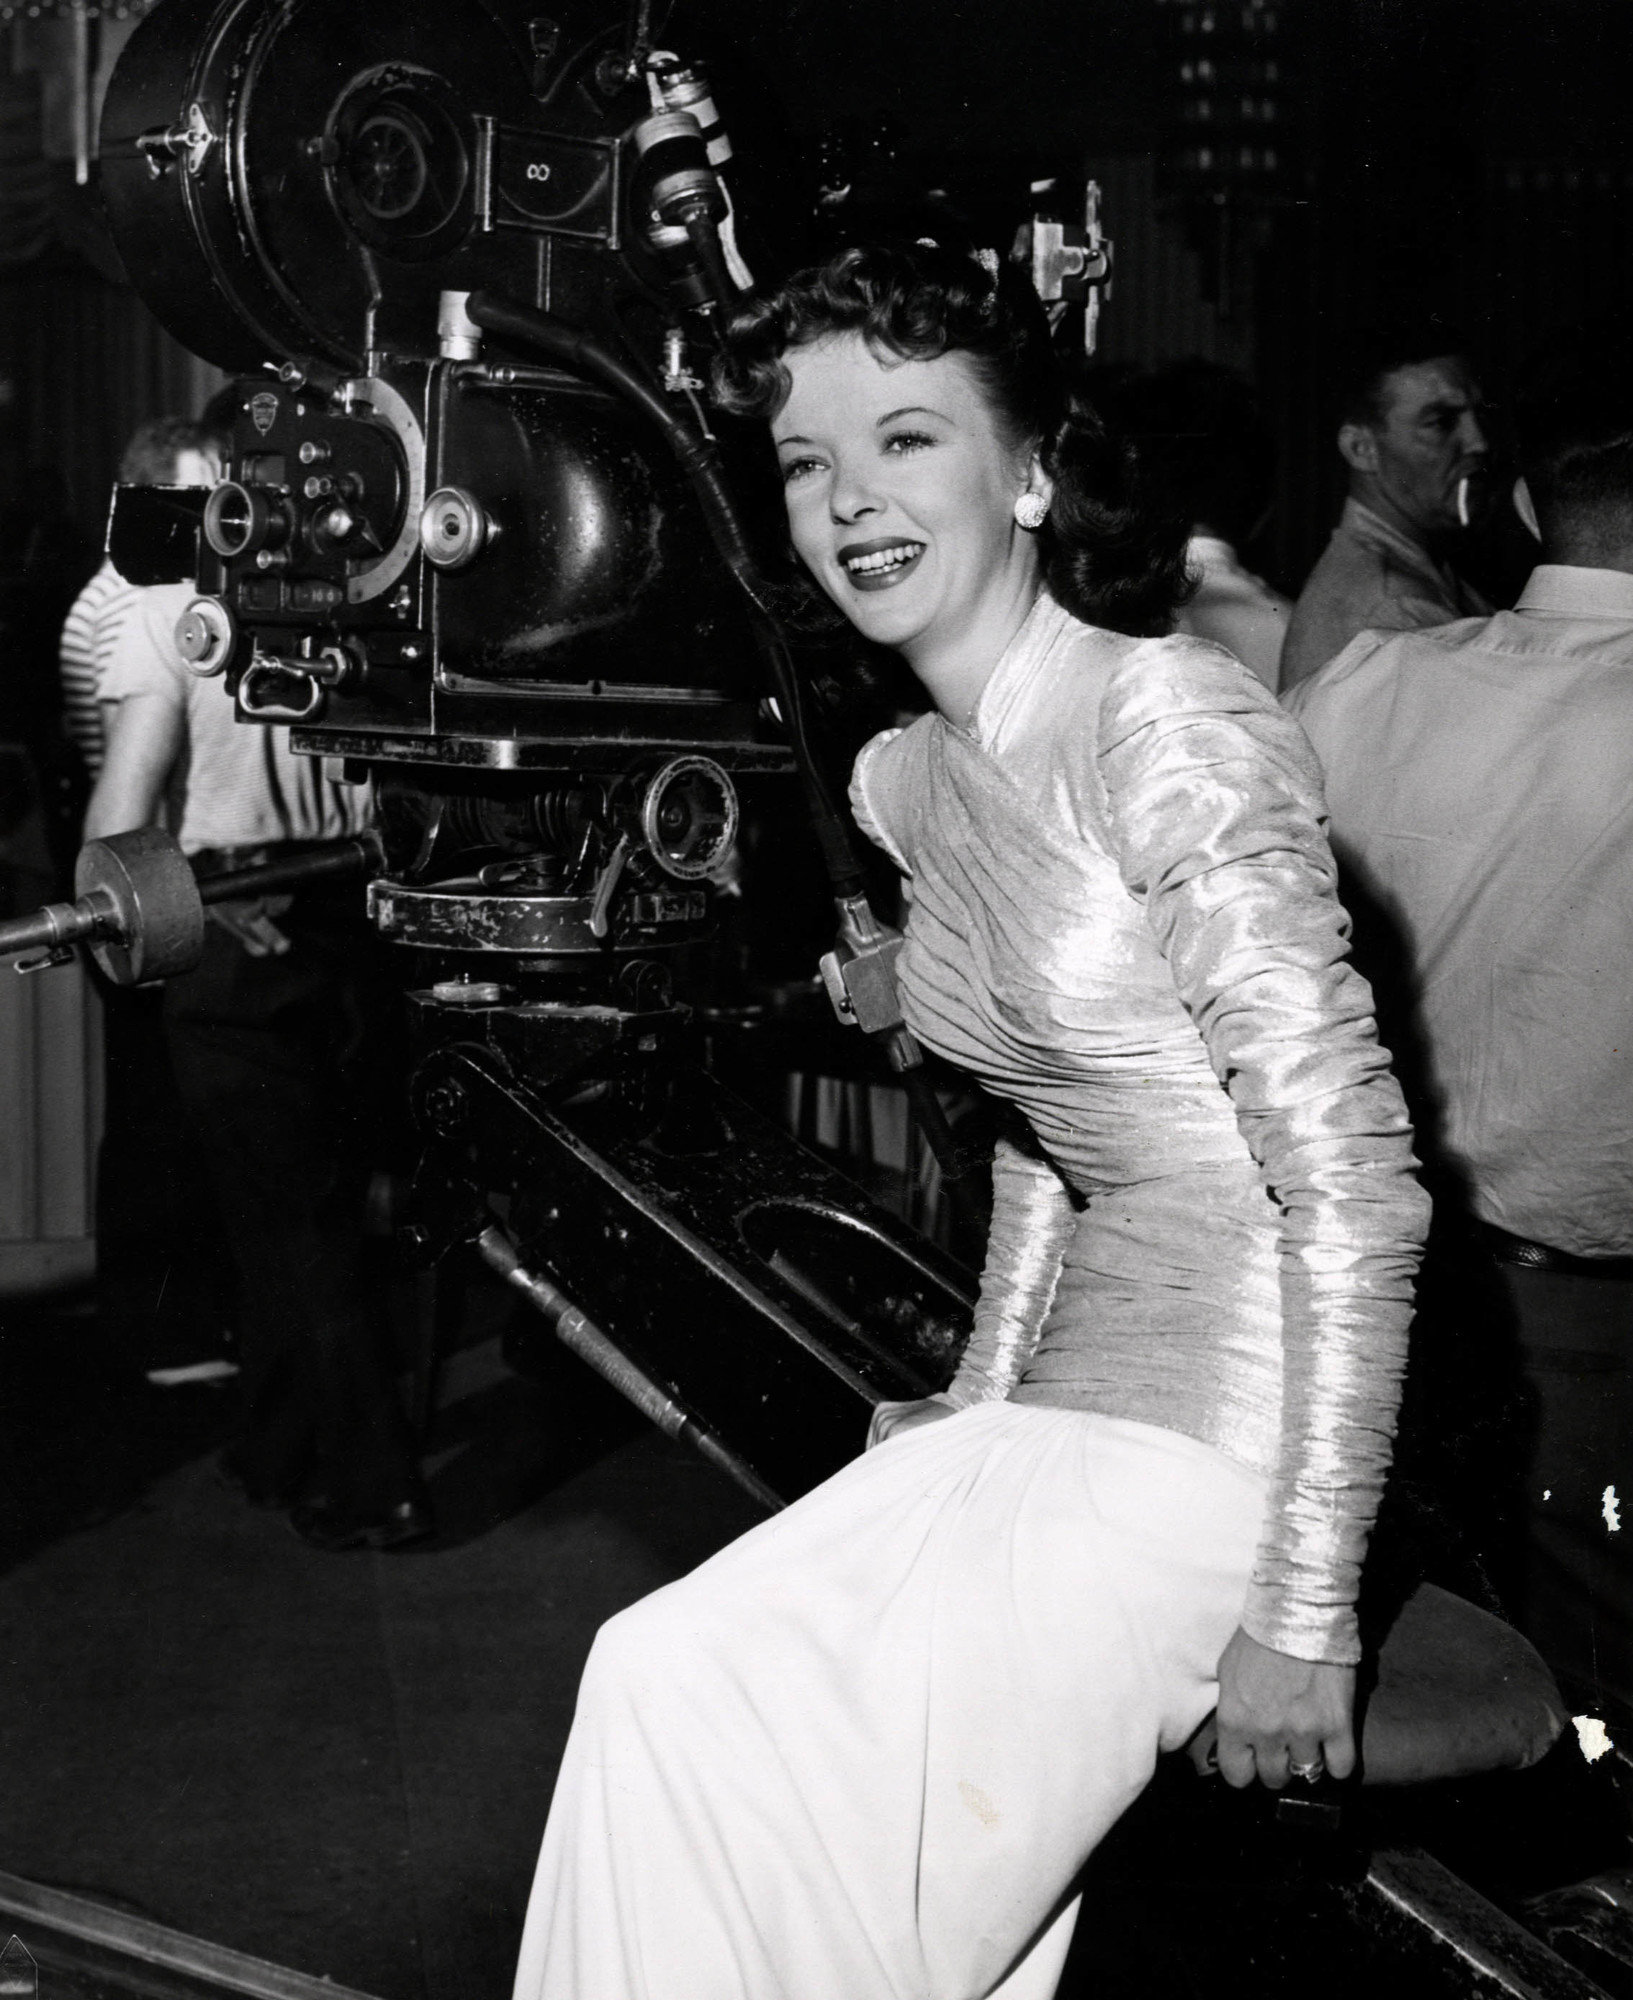 ida lupino photosida lupino gif, ida lupino, ida lupino columbo, ida lupino quotes, ida lupino youtube, ida lupino paul bley, ida lupino the man i love, ida lupino road house, ida lupino imdb, ida lupino twilight zone, ida lupino grave, ida lupino measurements, ida lupino photo gallery, ida lupino photos, ida lupino carla bley, ida lupino batman, ida lupino howard hughes, ida lupino movies list, ida lupino net worth